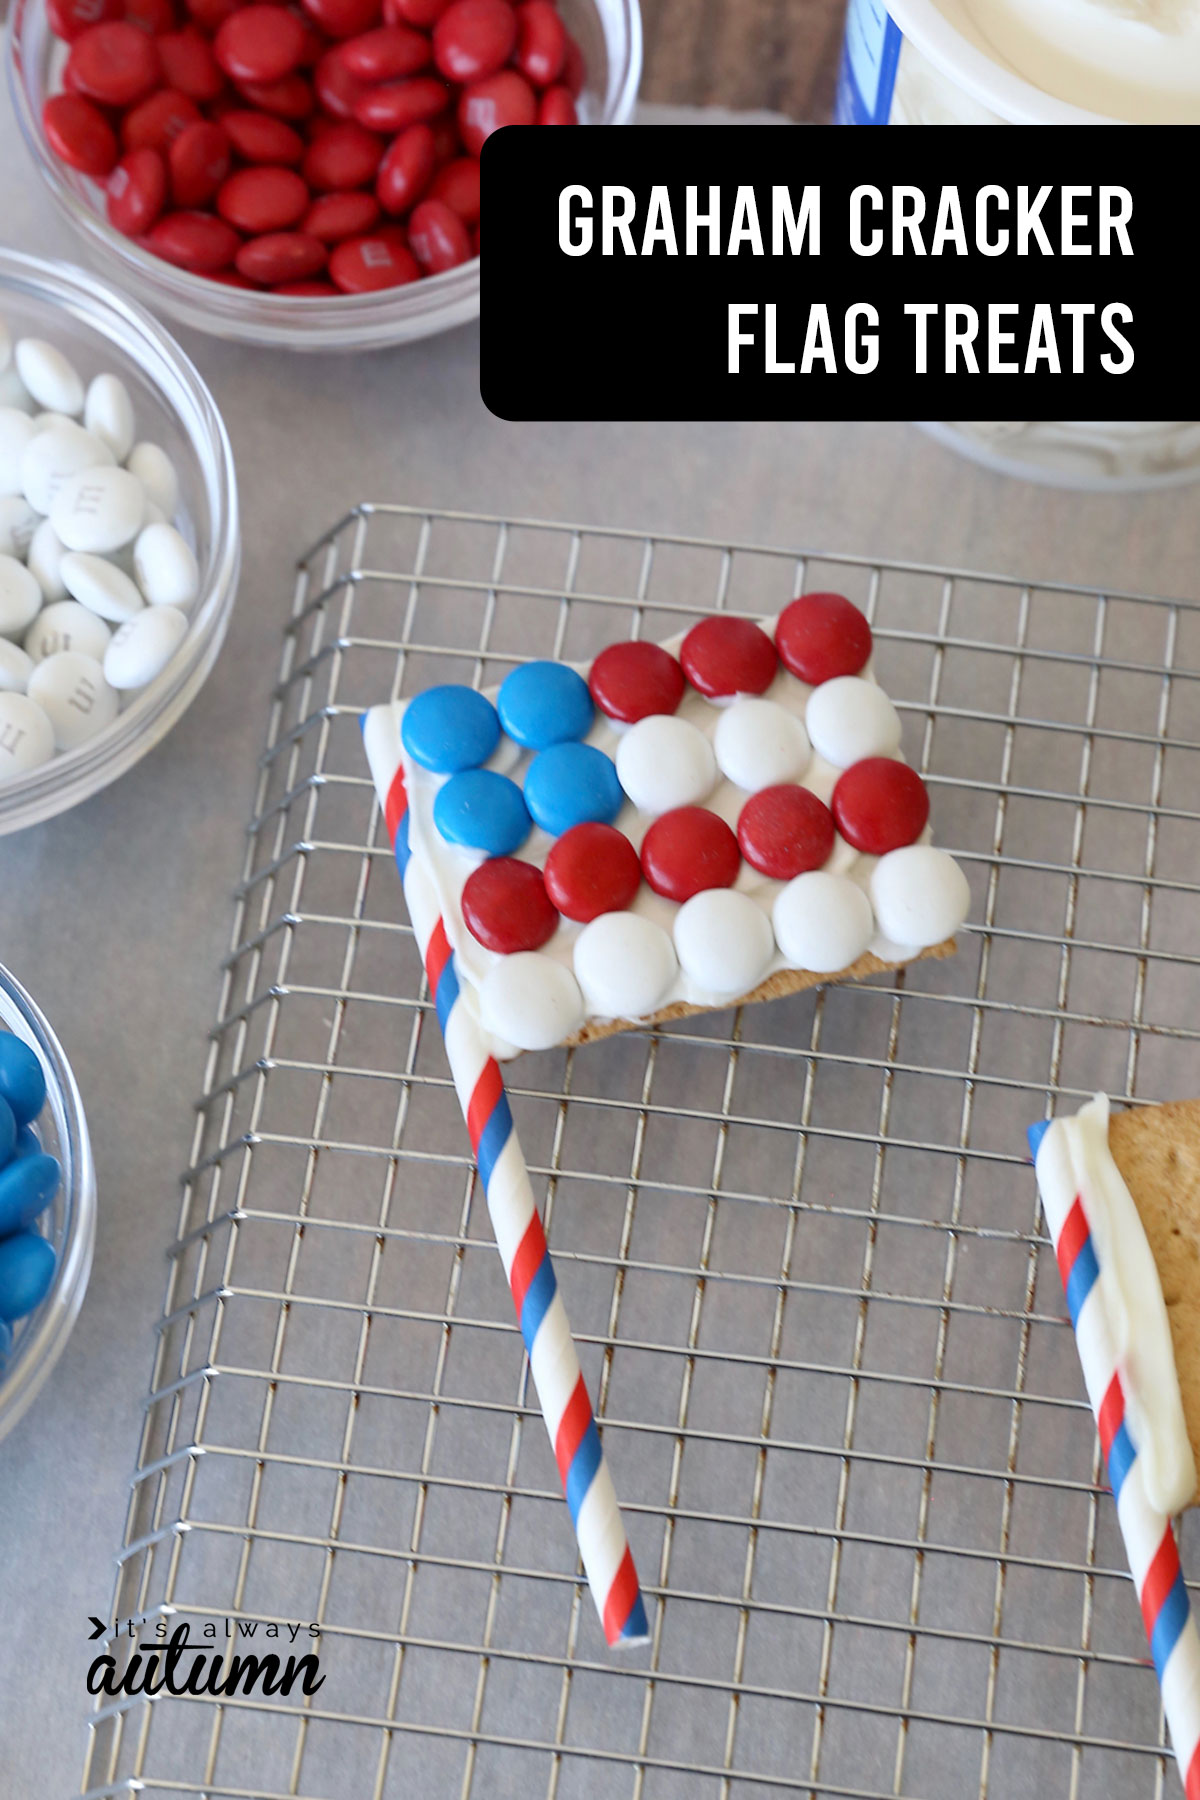 Graham cracked flags are an easy 4th of July treat that kids can cook!